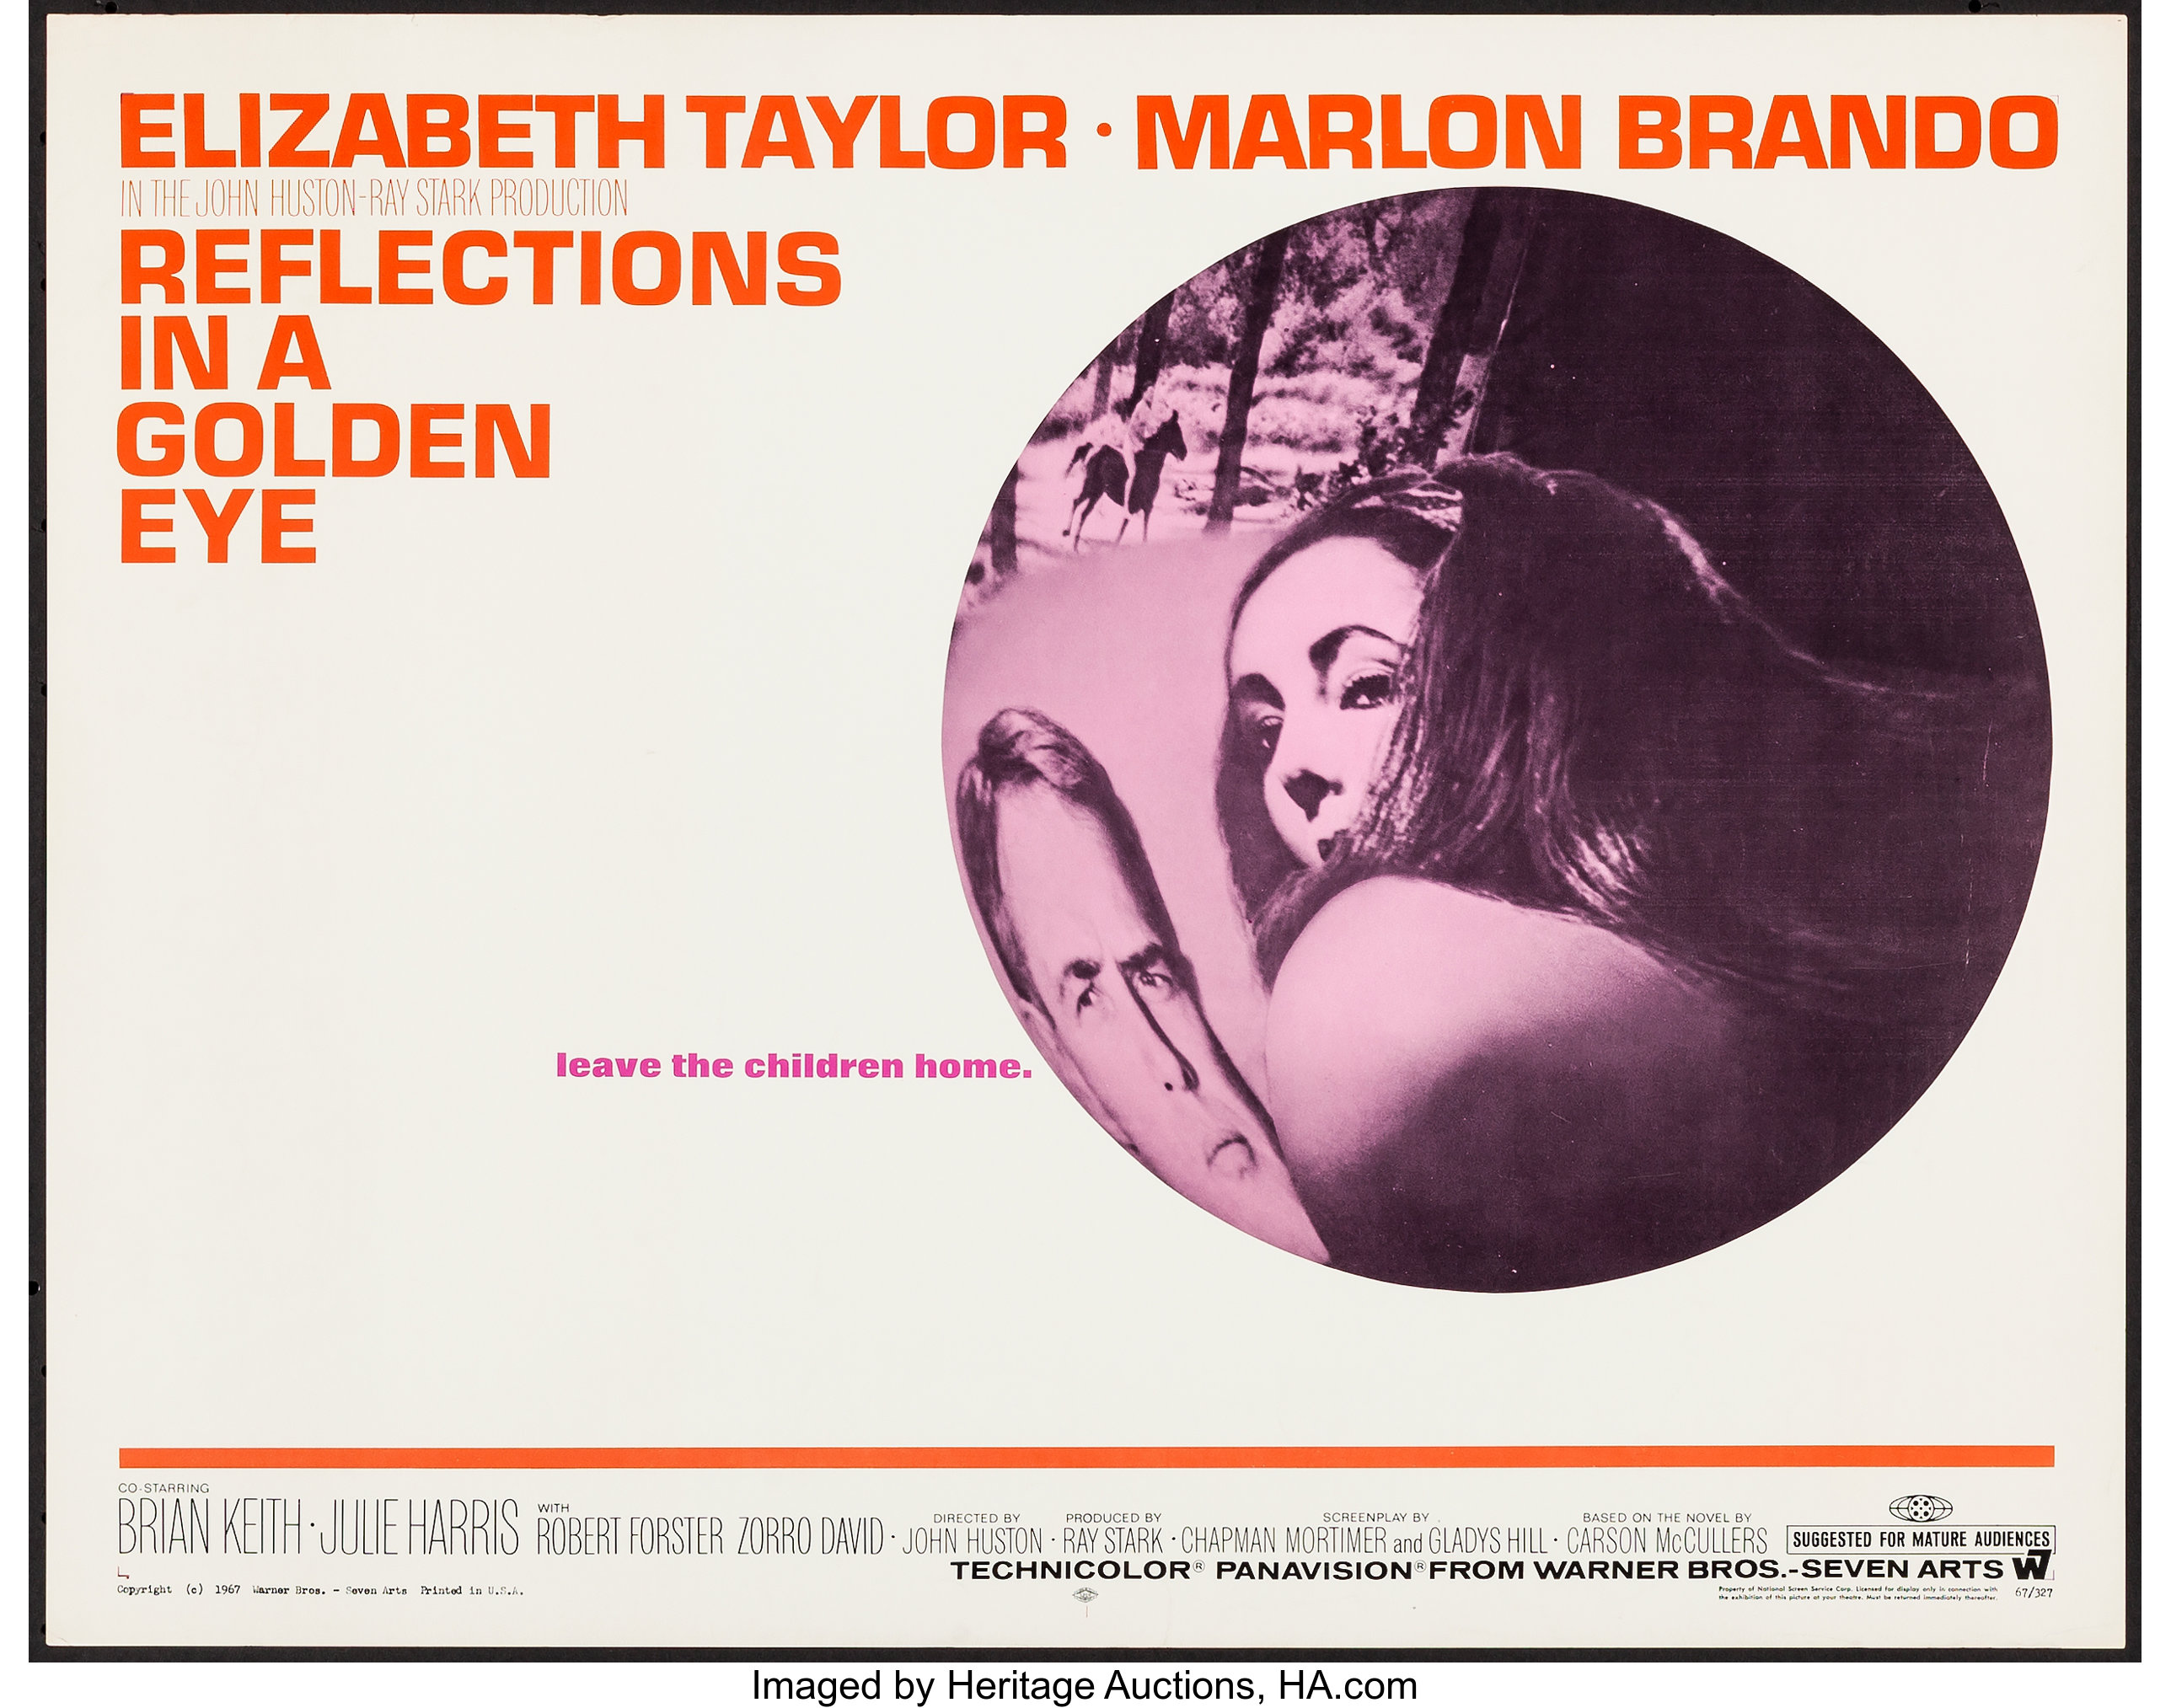 Reflections in a gloden eye Elizabeth Taylor movie poster print